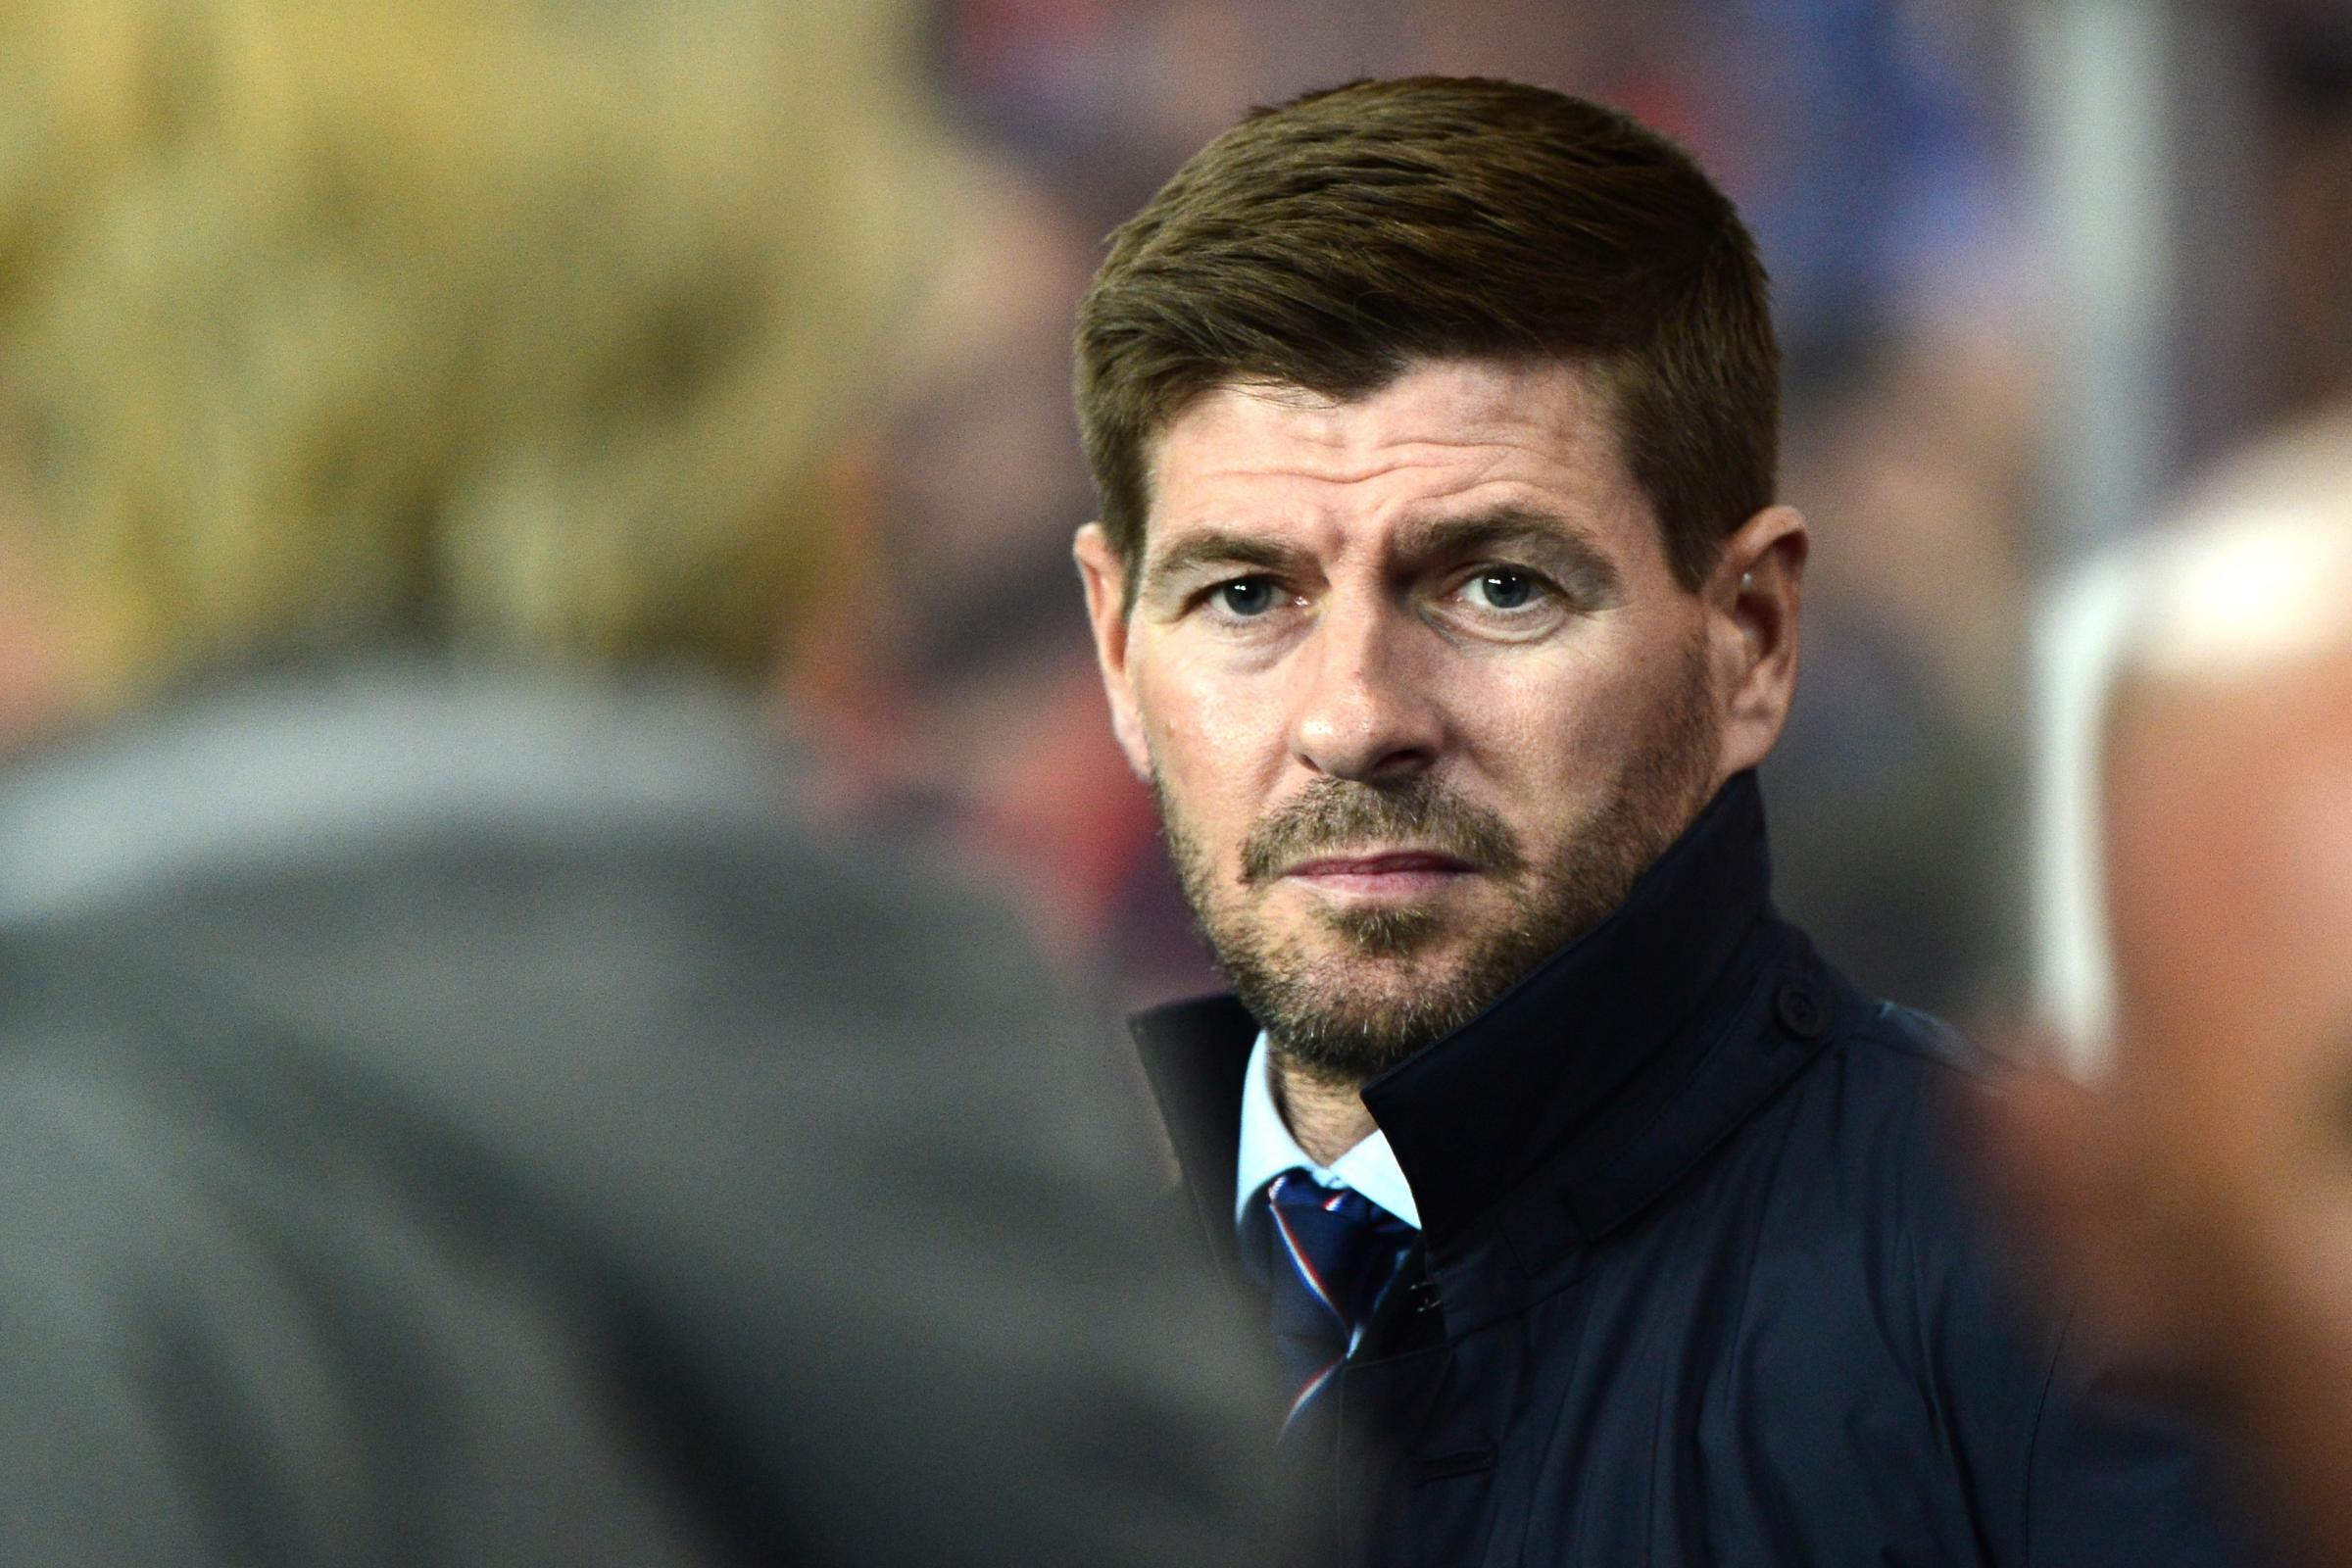 Steven Gerrard: We gave Rangers fans a performance to be proud of - now we must maintain that